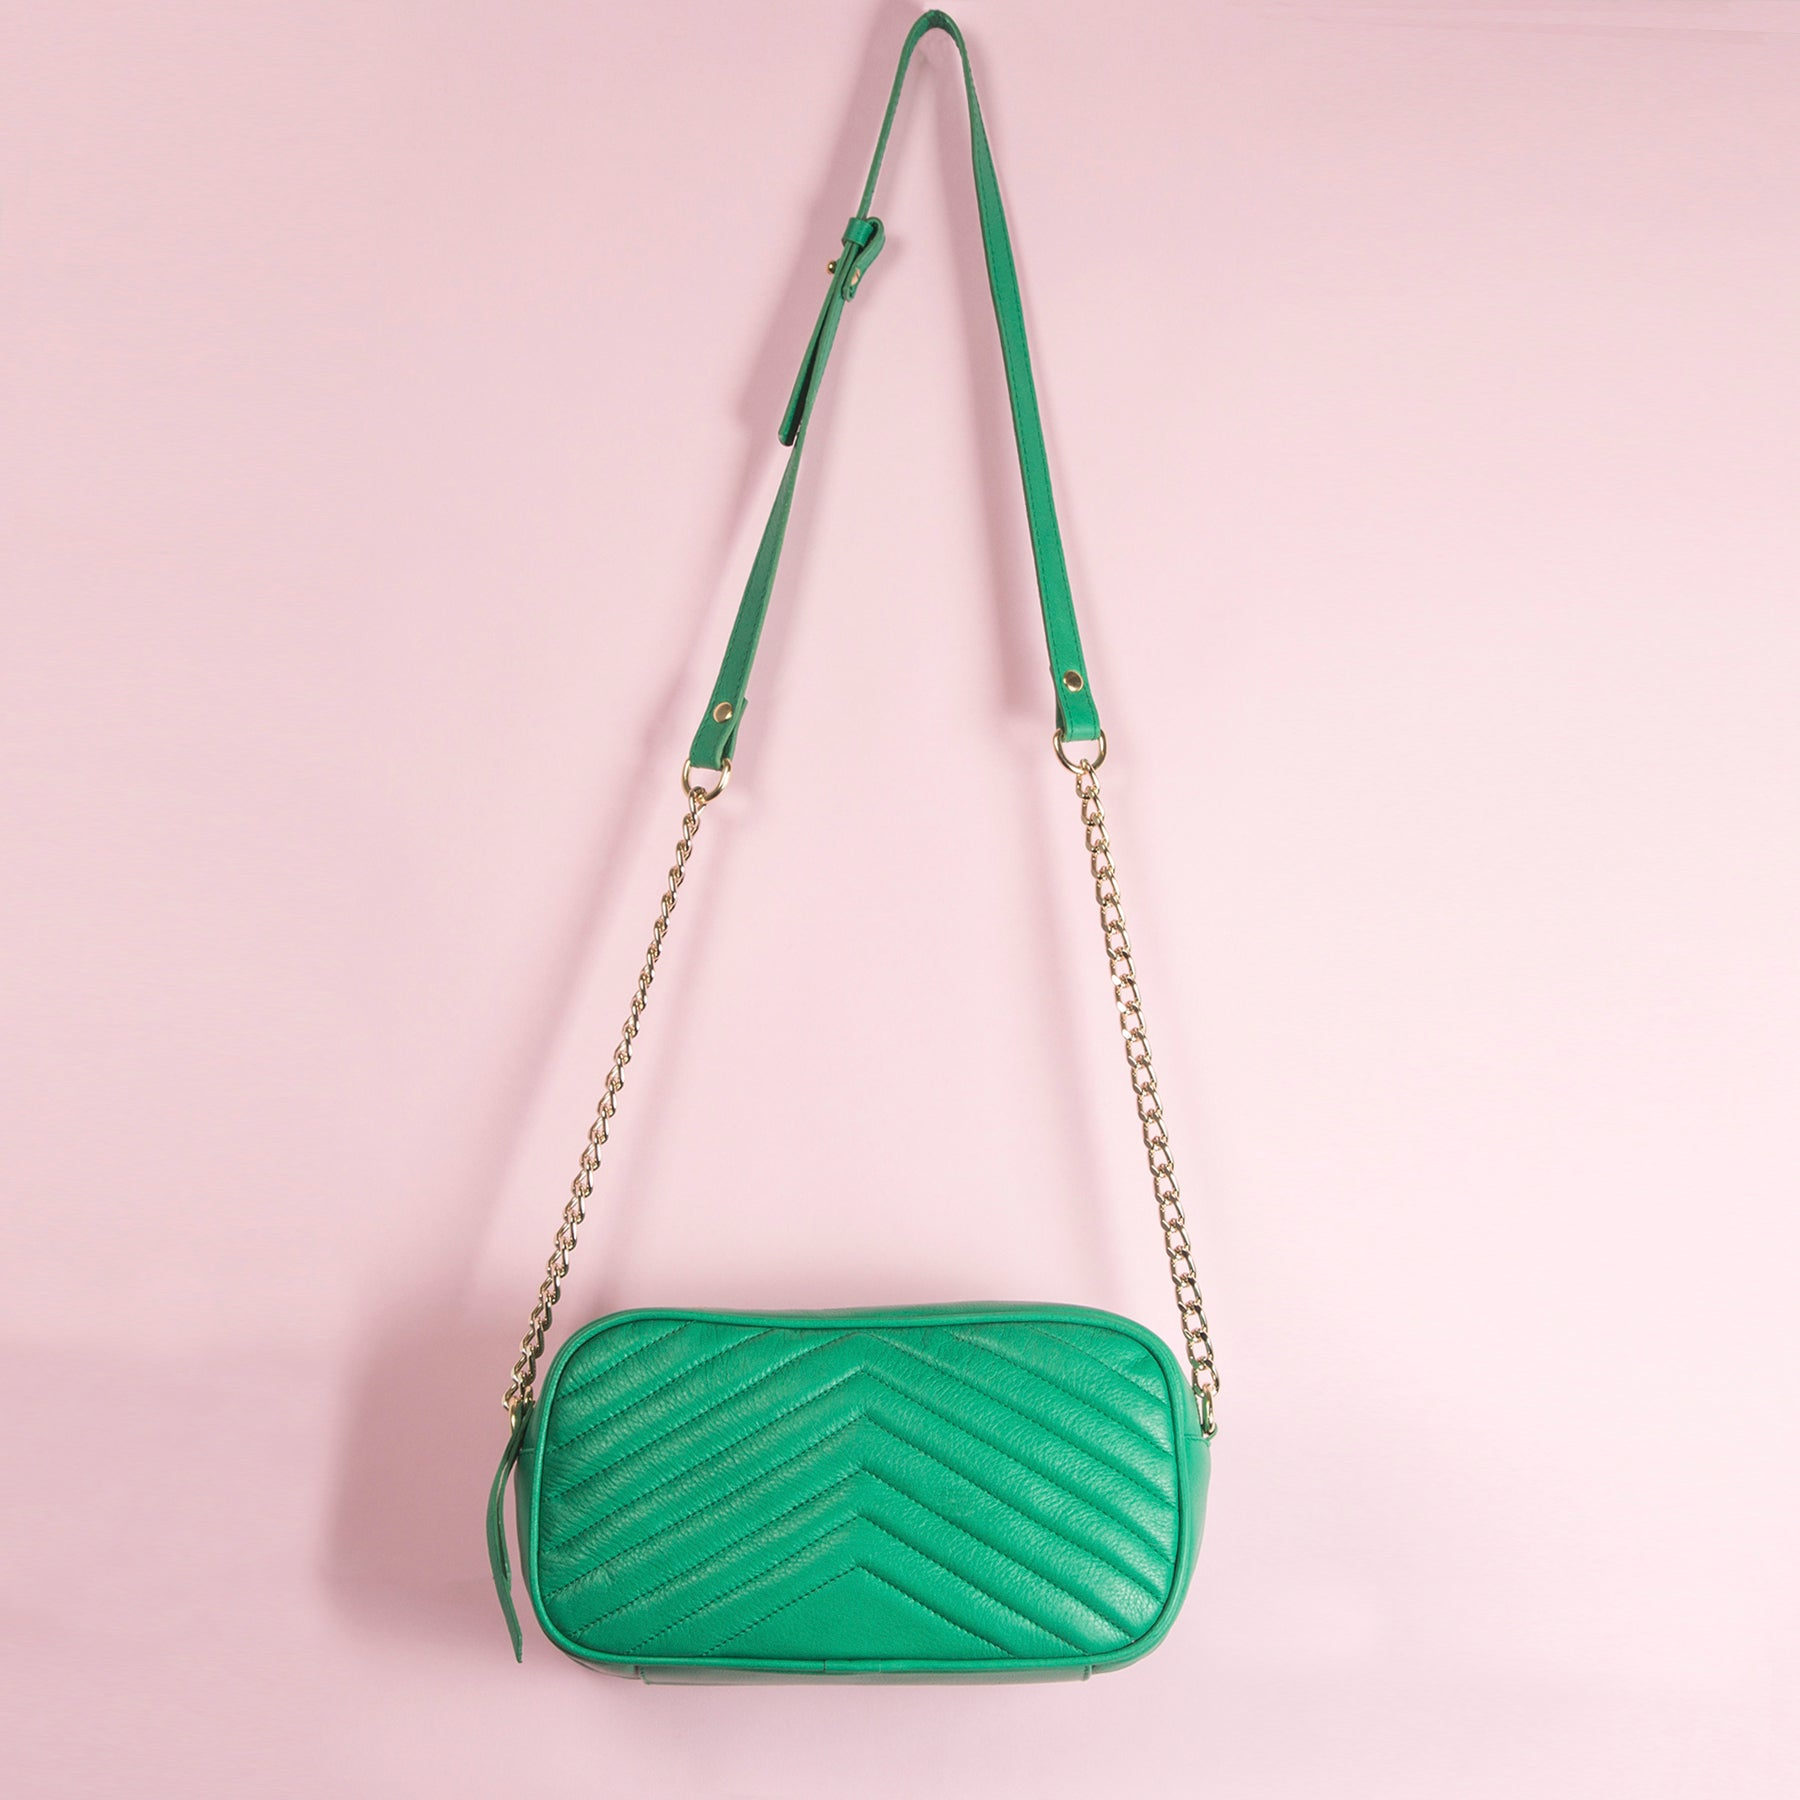 Bijoux Green Leather